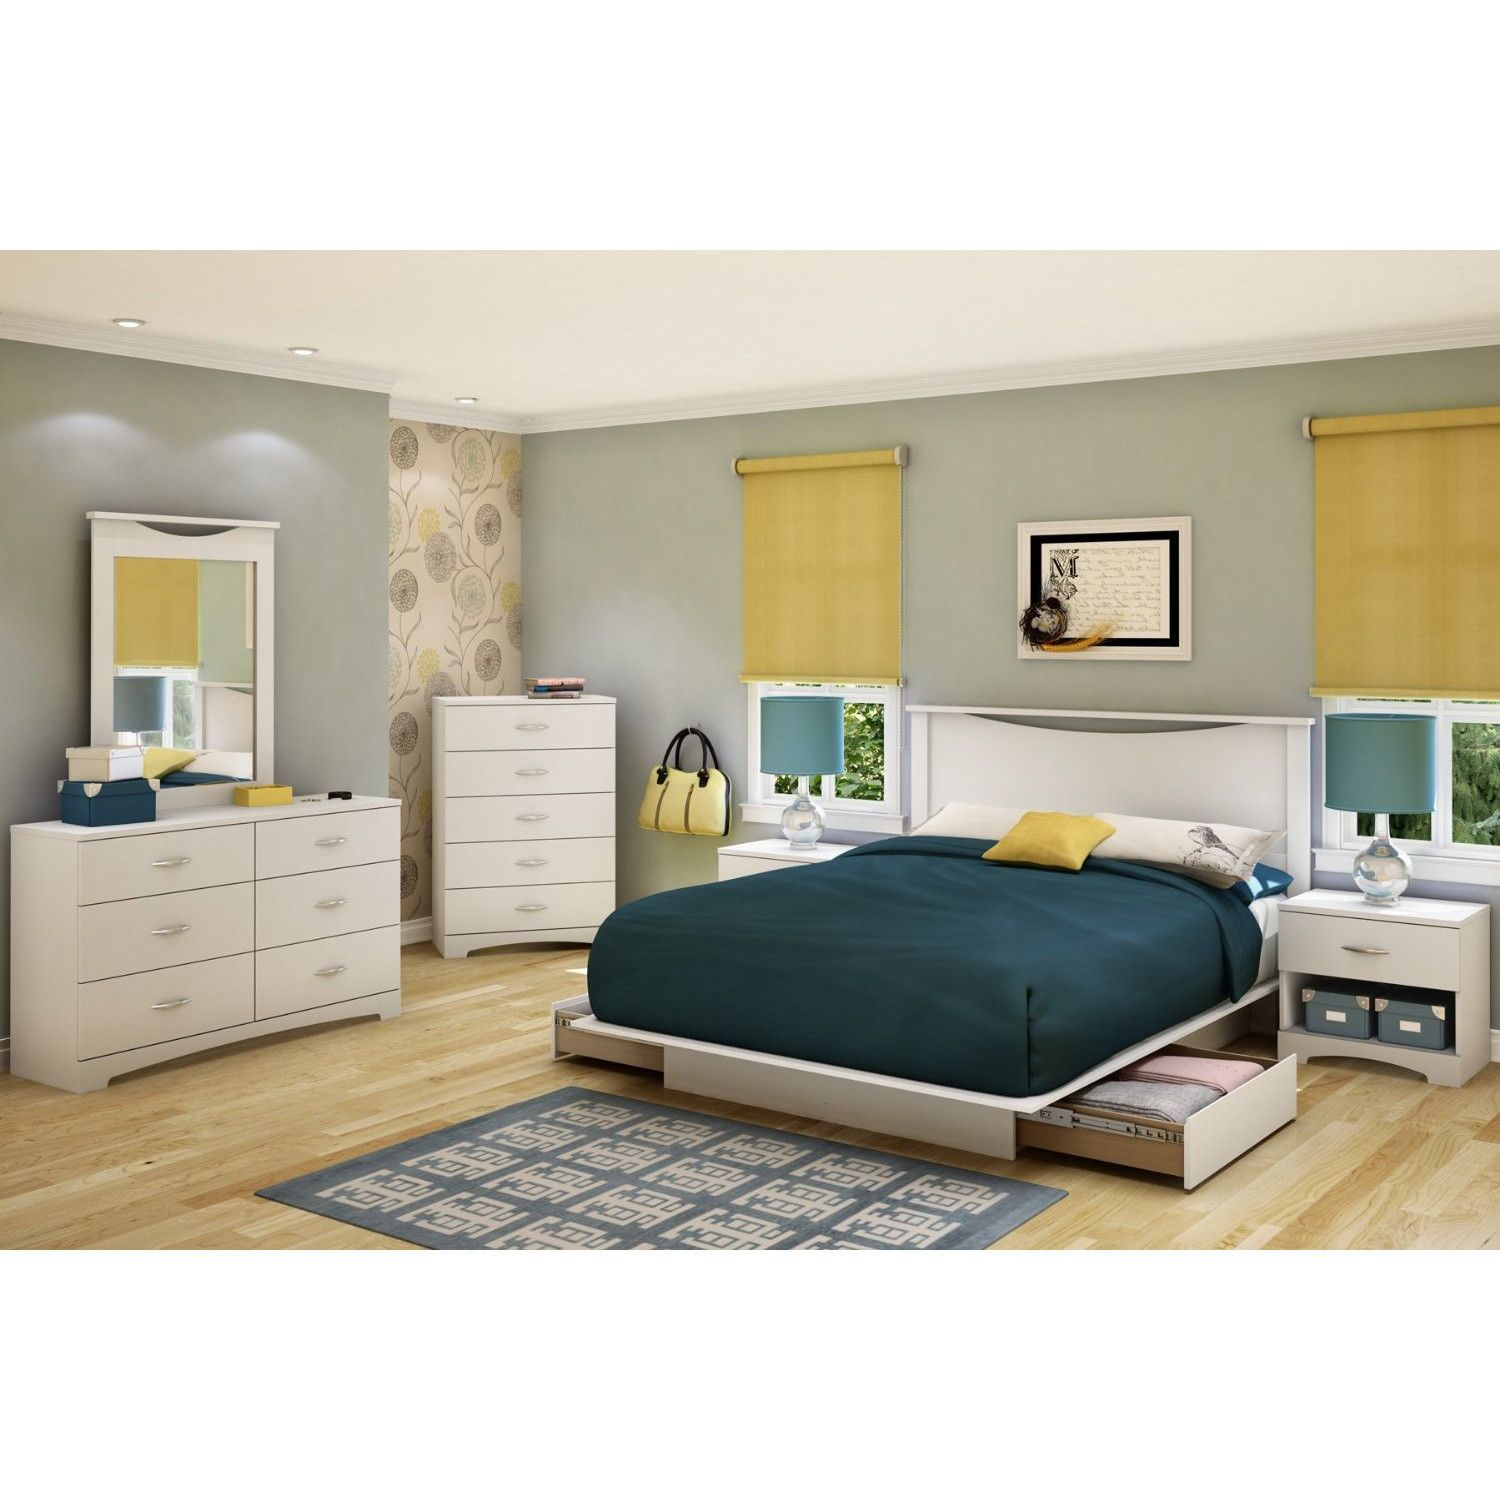 Queen size Contemporary White Platform Bed with 2 Storage